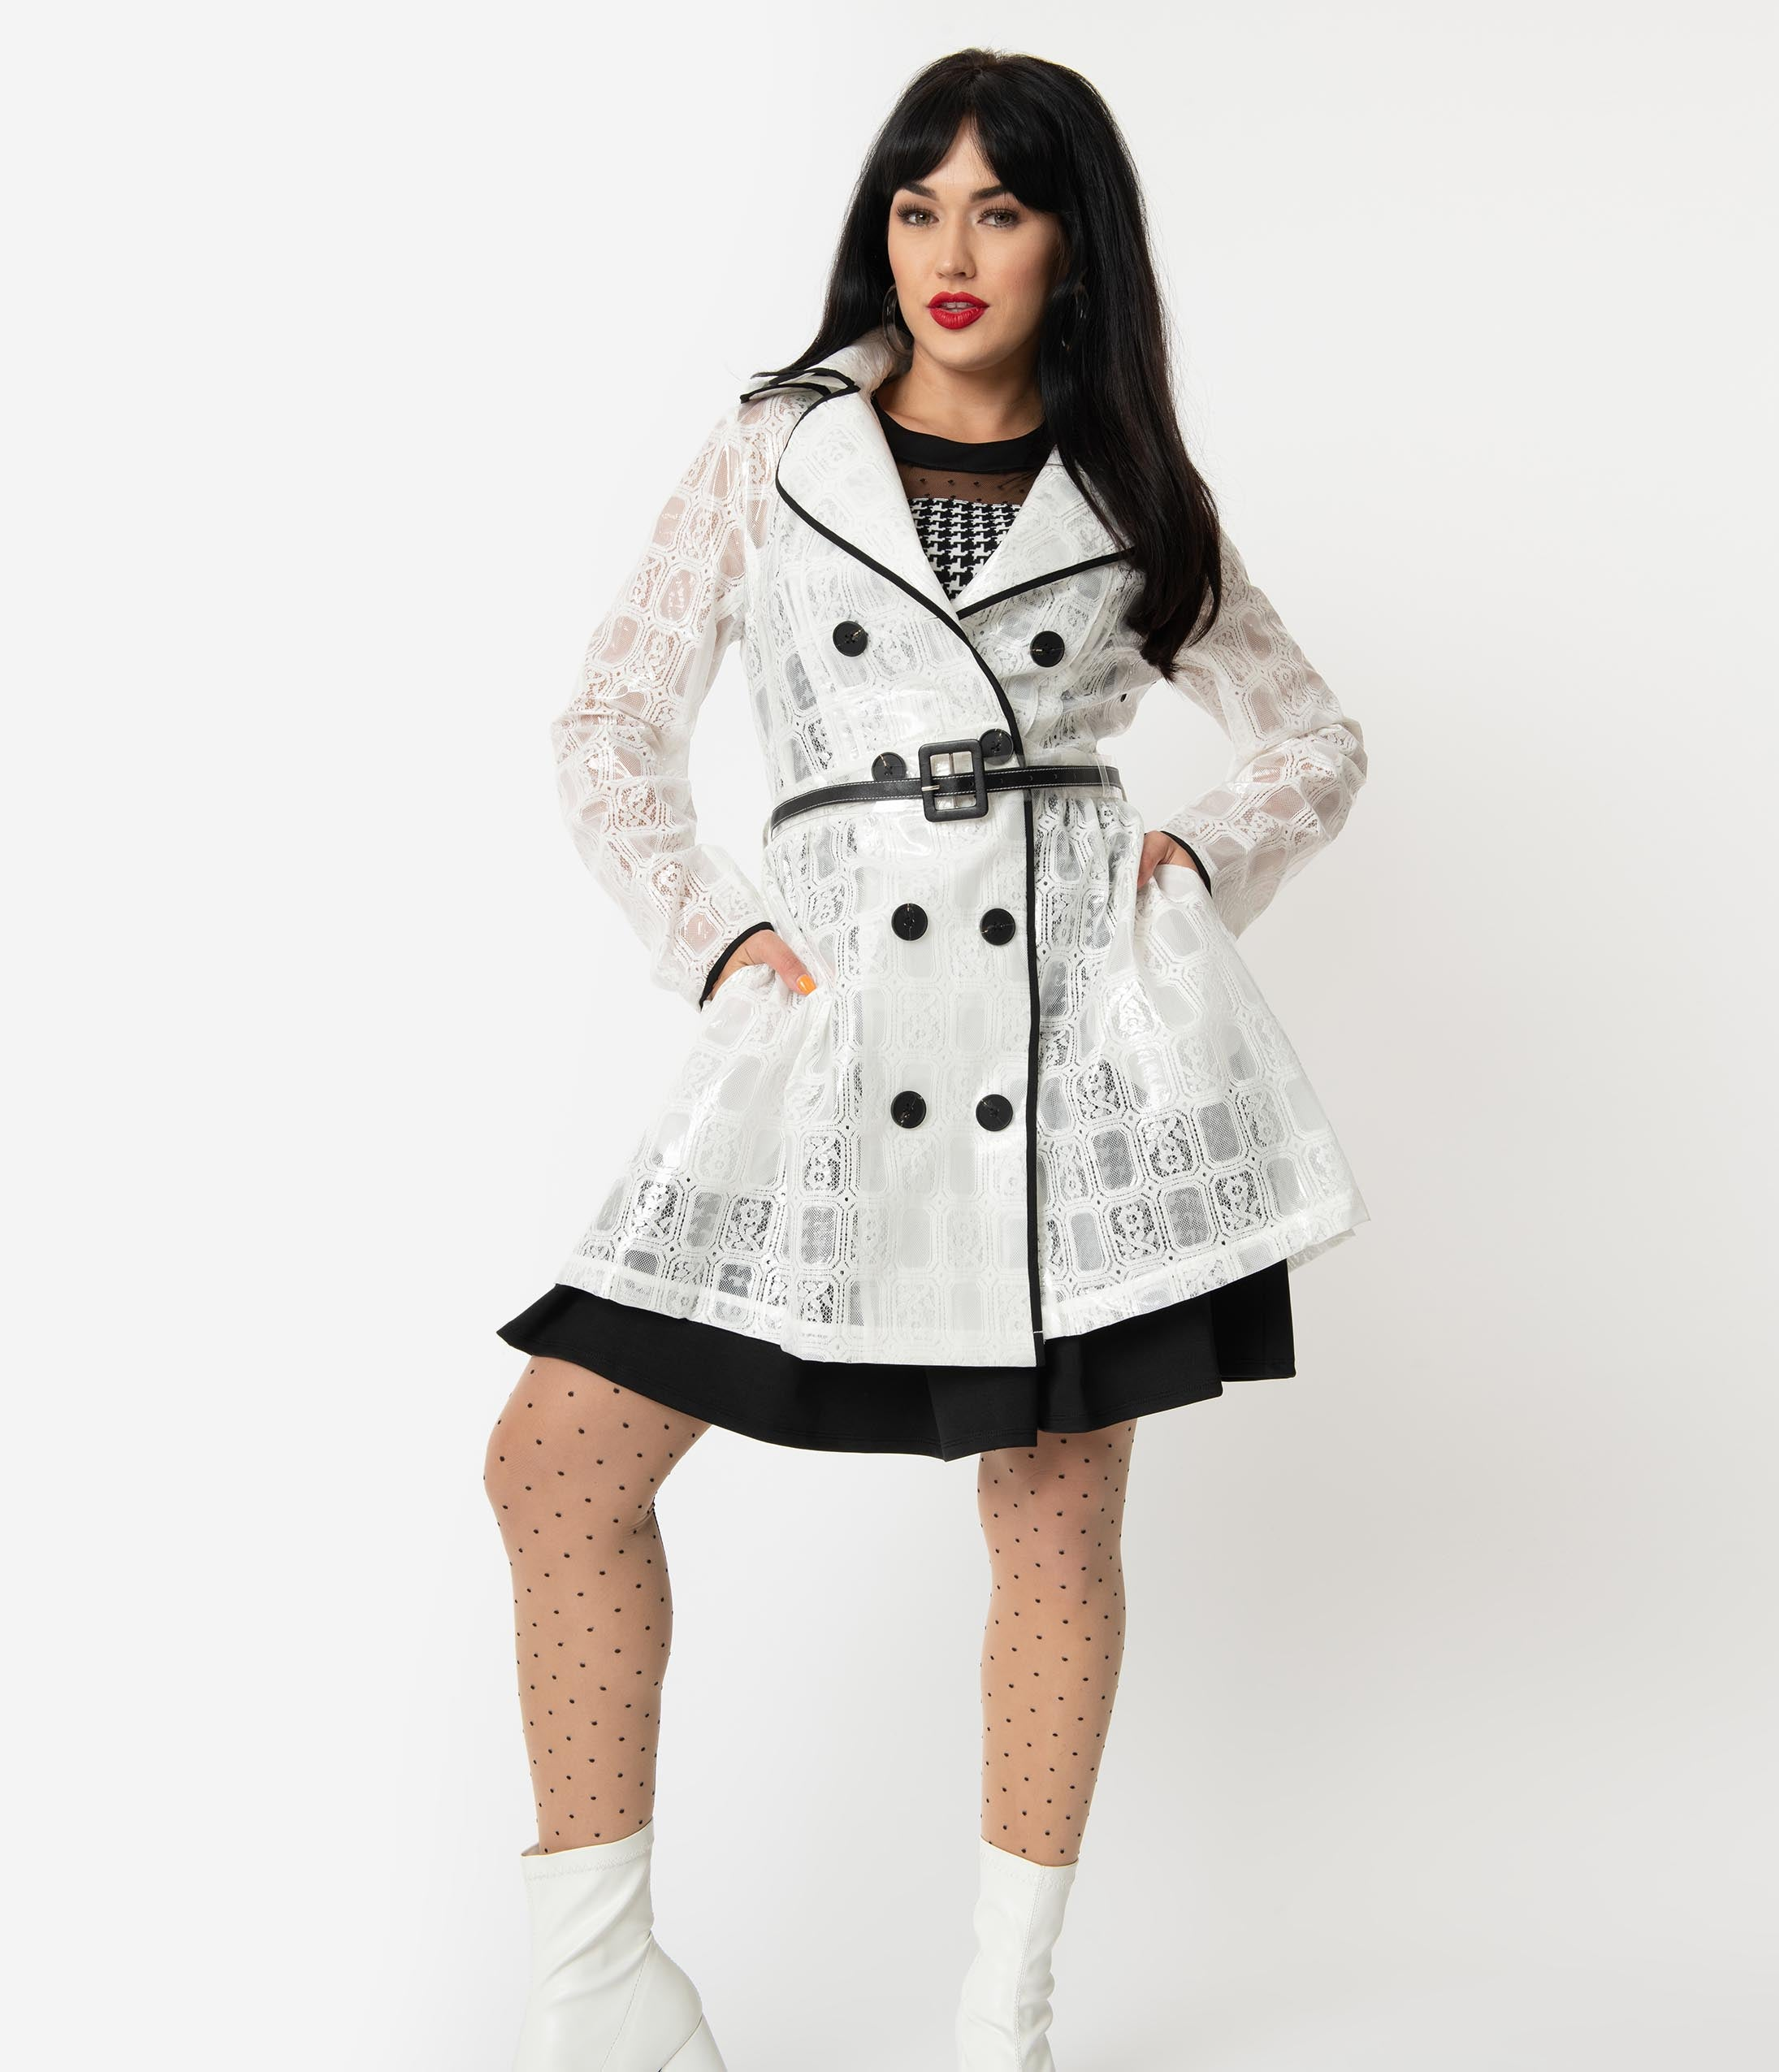 1960s Coats and Jackets Retro Style White Lace  Vinyl Double-Breasted Short Raincoat $154.00 AT vintagedancer.com